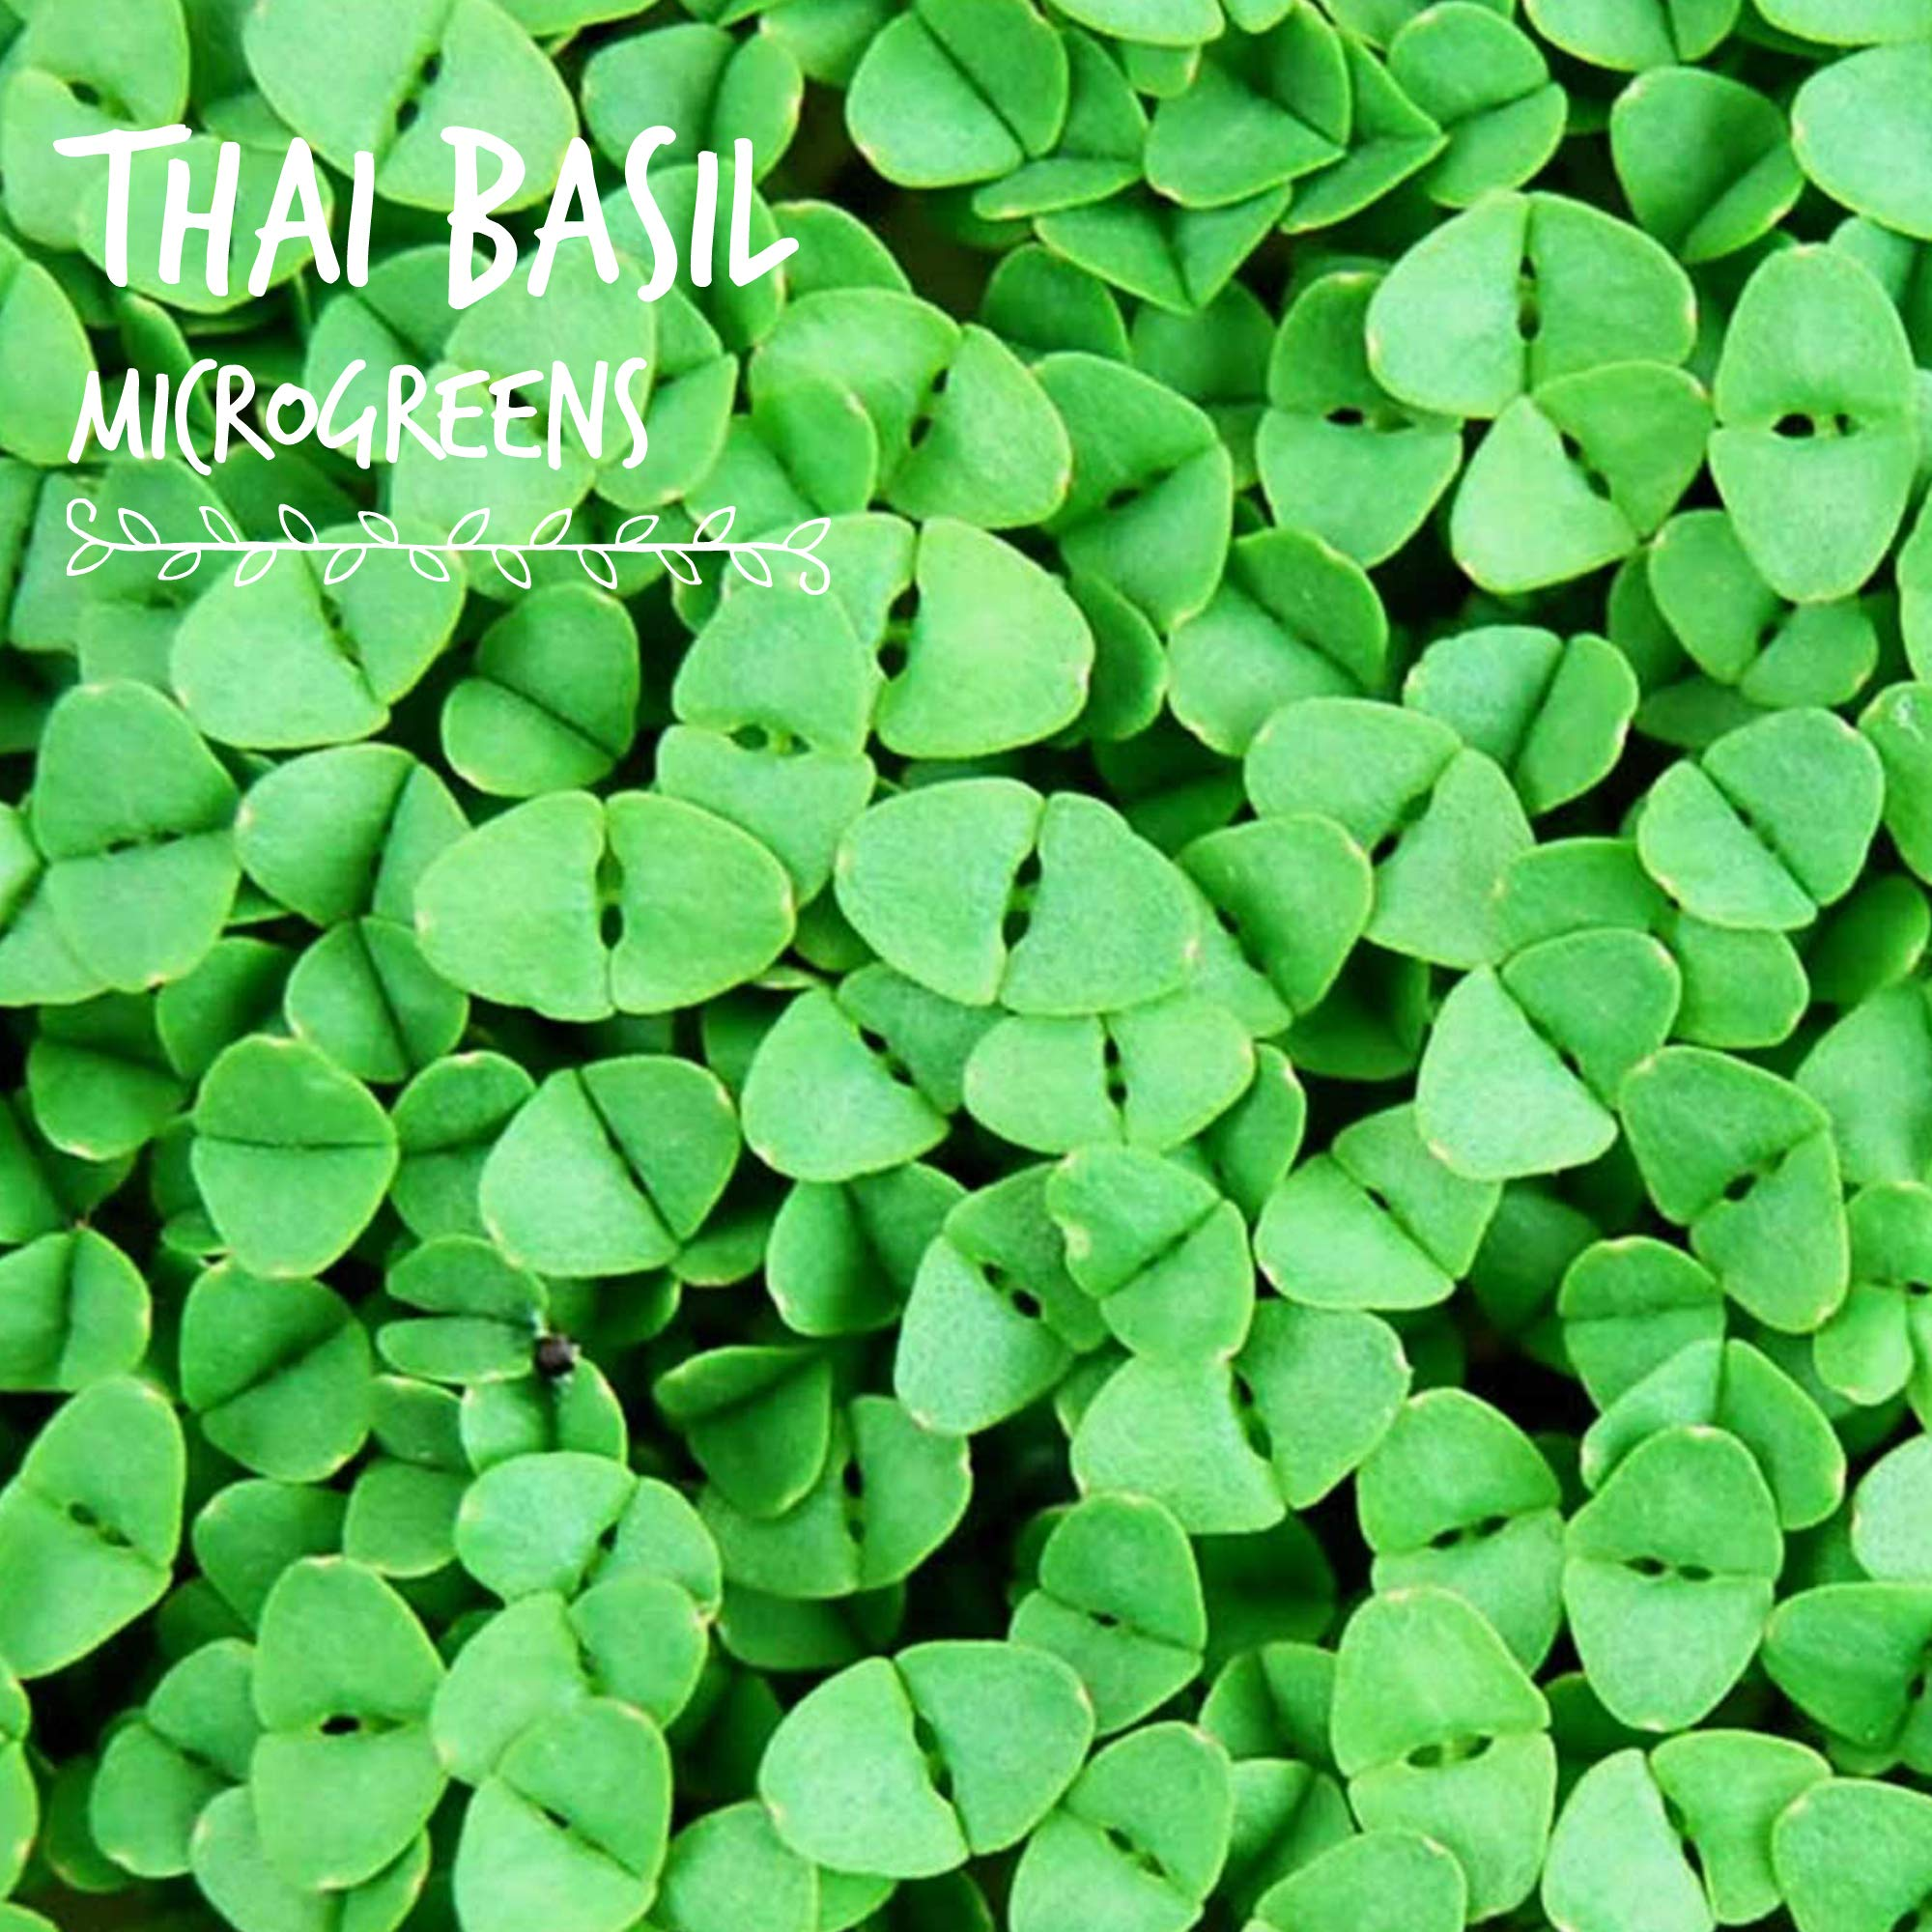 Thai Basil Seeds - Bulk Herb Seeds for Growing Microgreens, Indoor Gardening: Micro Greens Salad (1 Lb) by Mountain Valley Seed Company (Image #3)